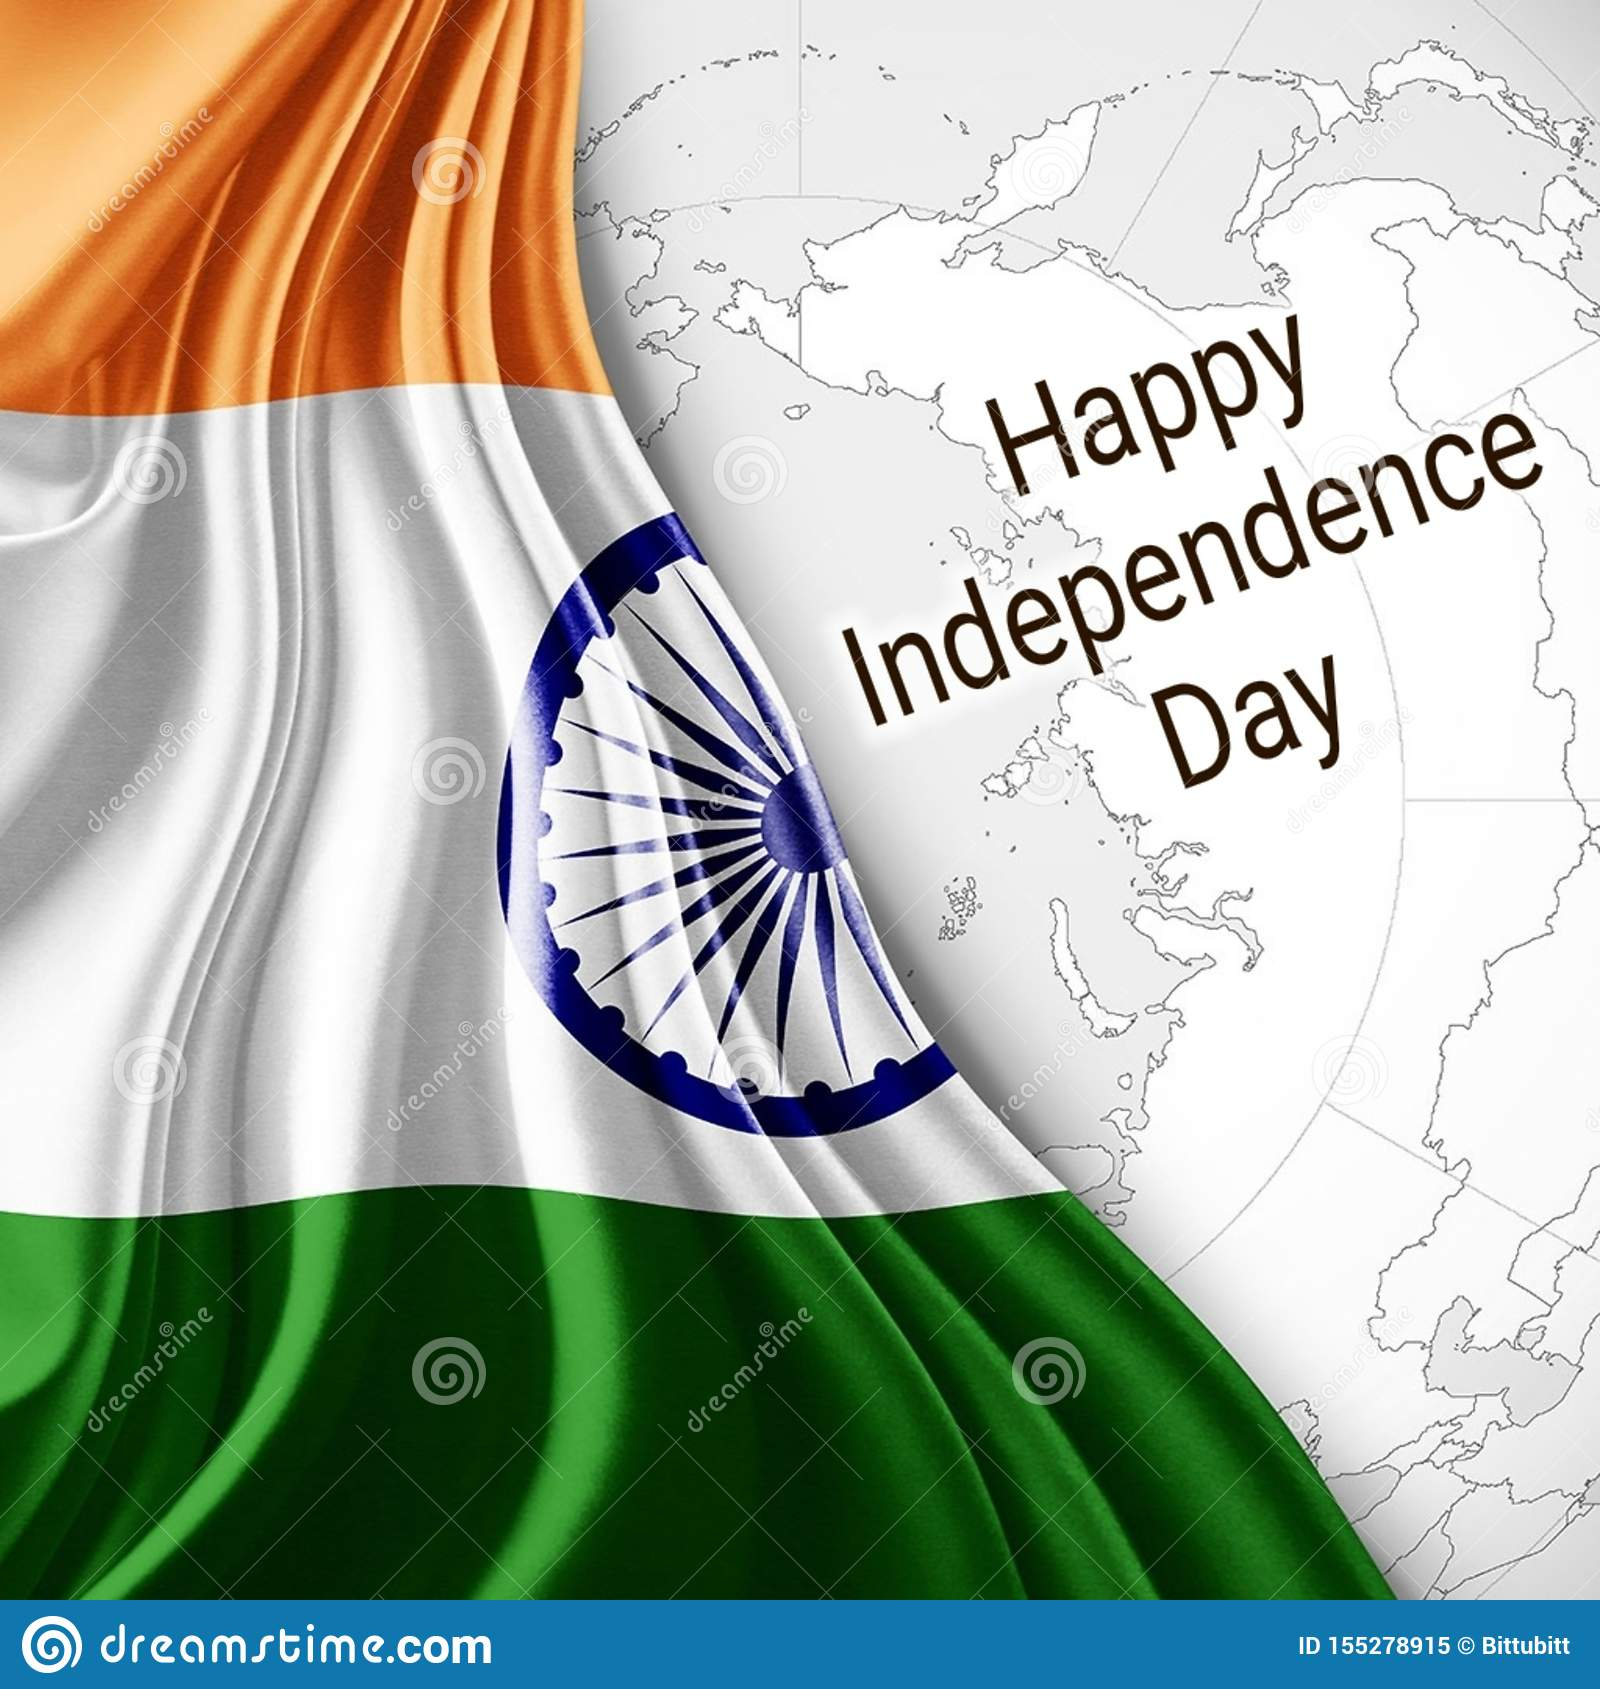 20+ Proud to be Indian ideas | republic day, republic day india, indian  independence day